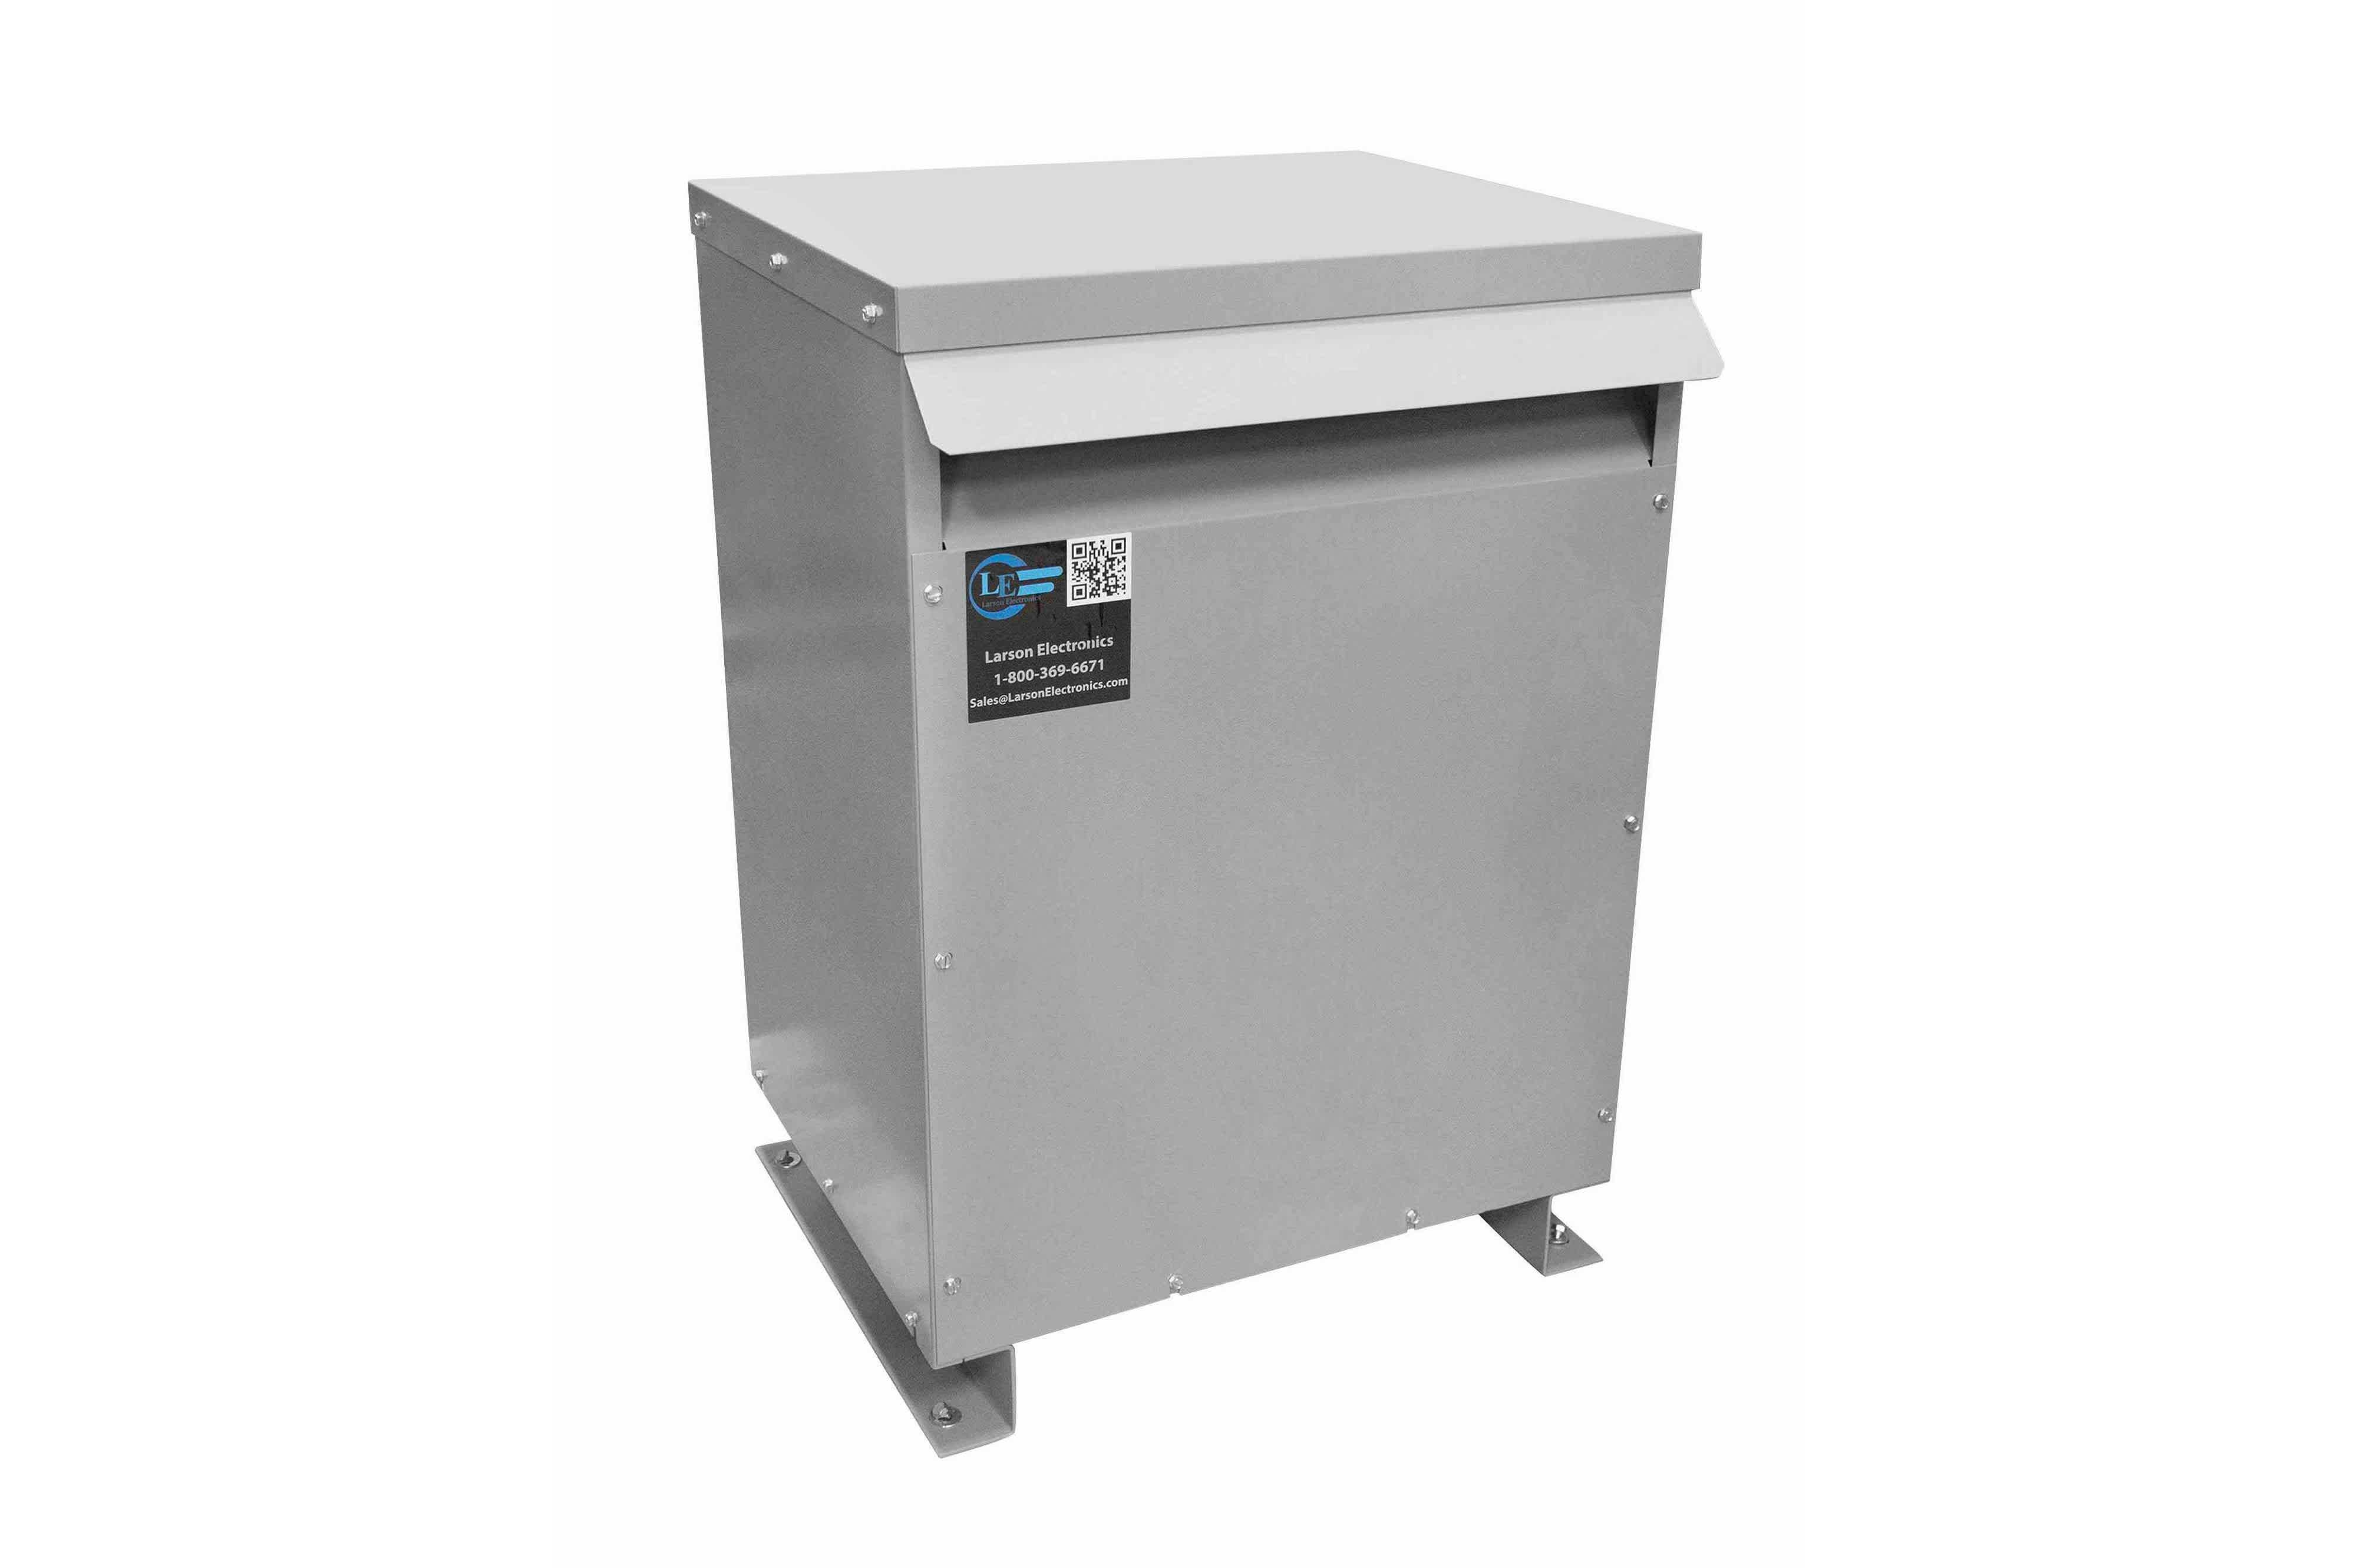 150 kVA 3PH DOE Transformer, 208V Delta Primary, 208Y/120 Wye-N Secondary, N3R, Ventilated, 60 Hz